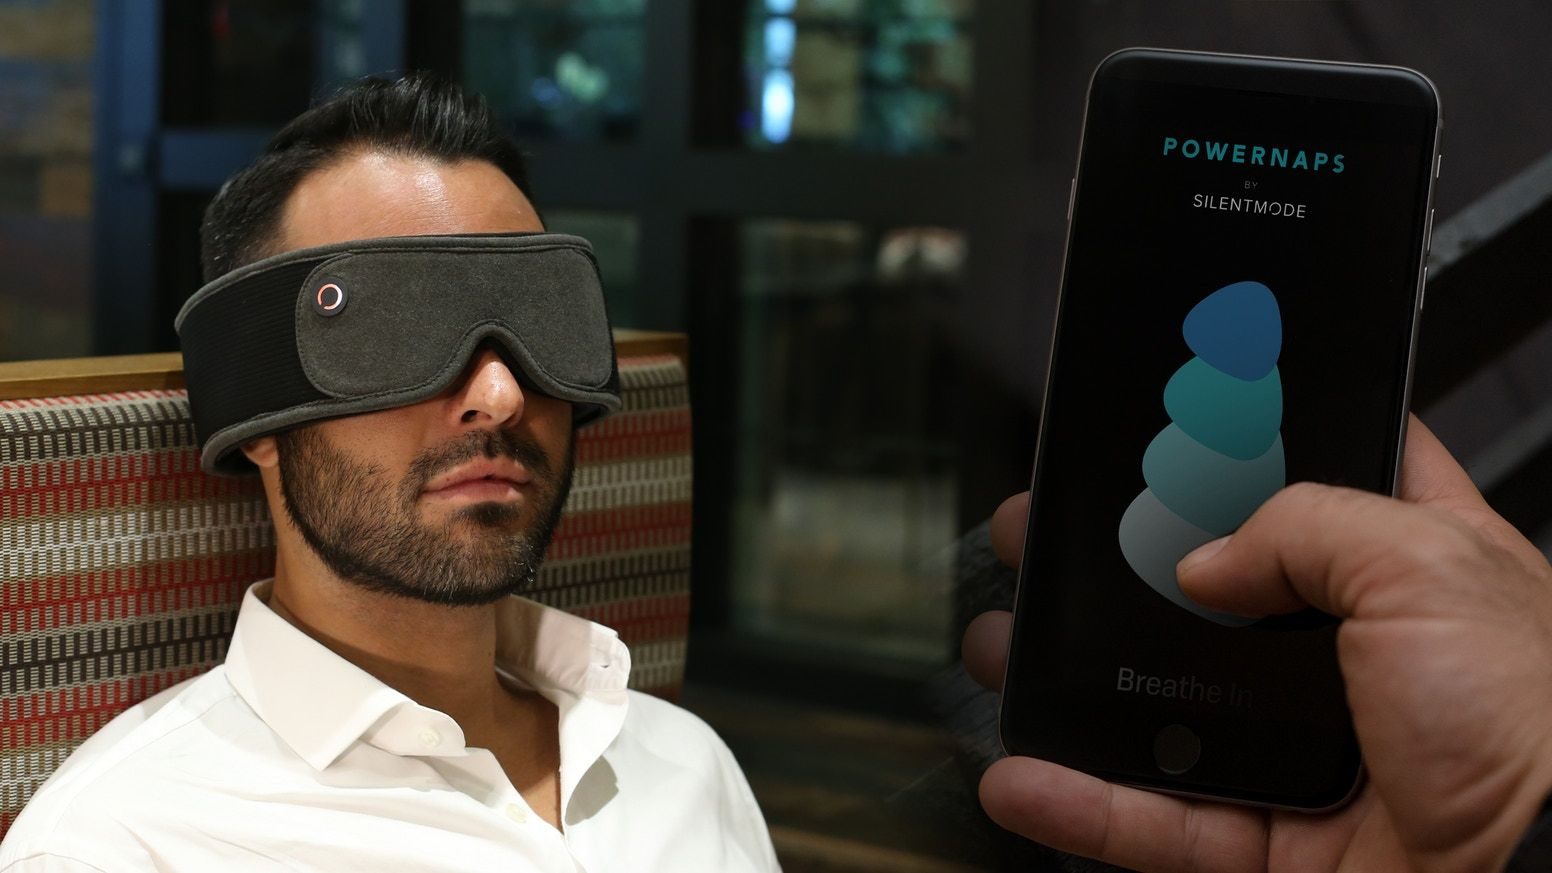 SILENTMODE Sleep mask with built in headphones Napping